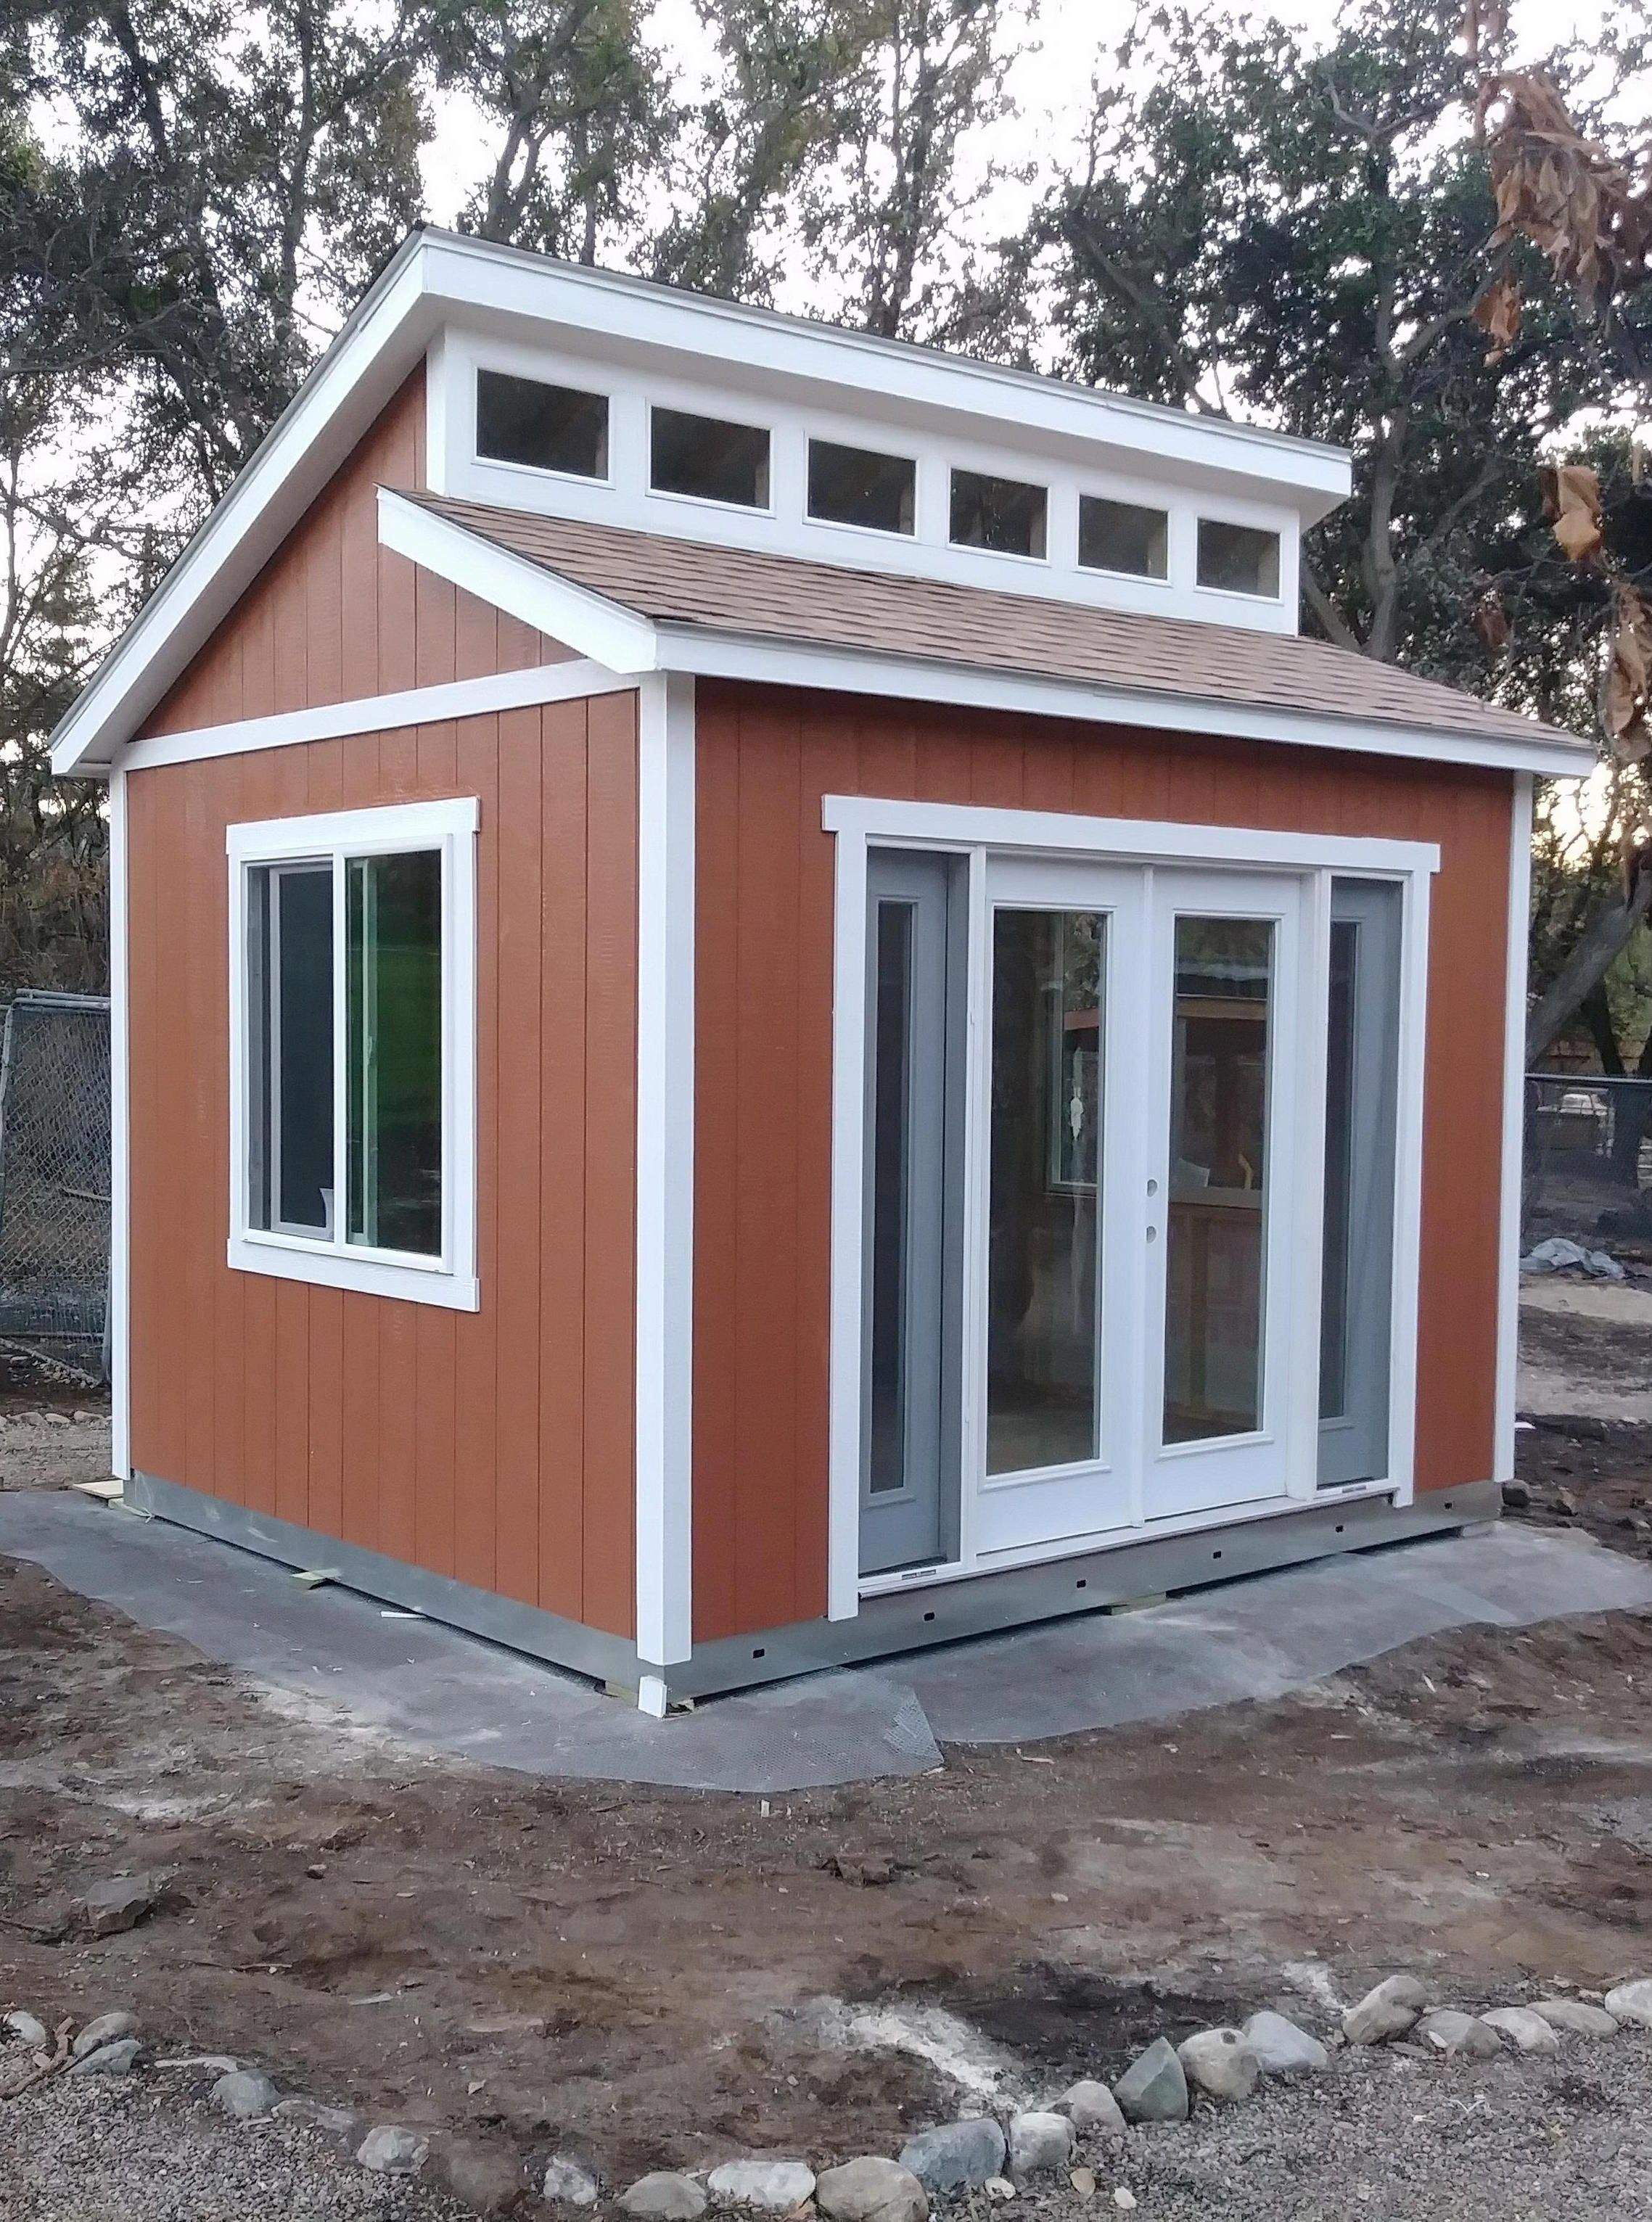 Modern Bright Full Of Space Our Clerestory Roof Option Adds Plenty Of Natural Light And Modern Style To Your Bu Building A Shed Shed Design Small Shed Plans